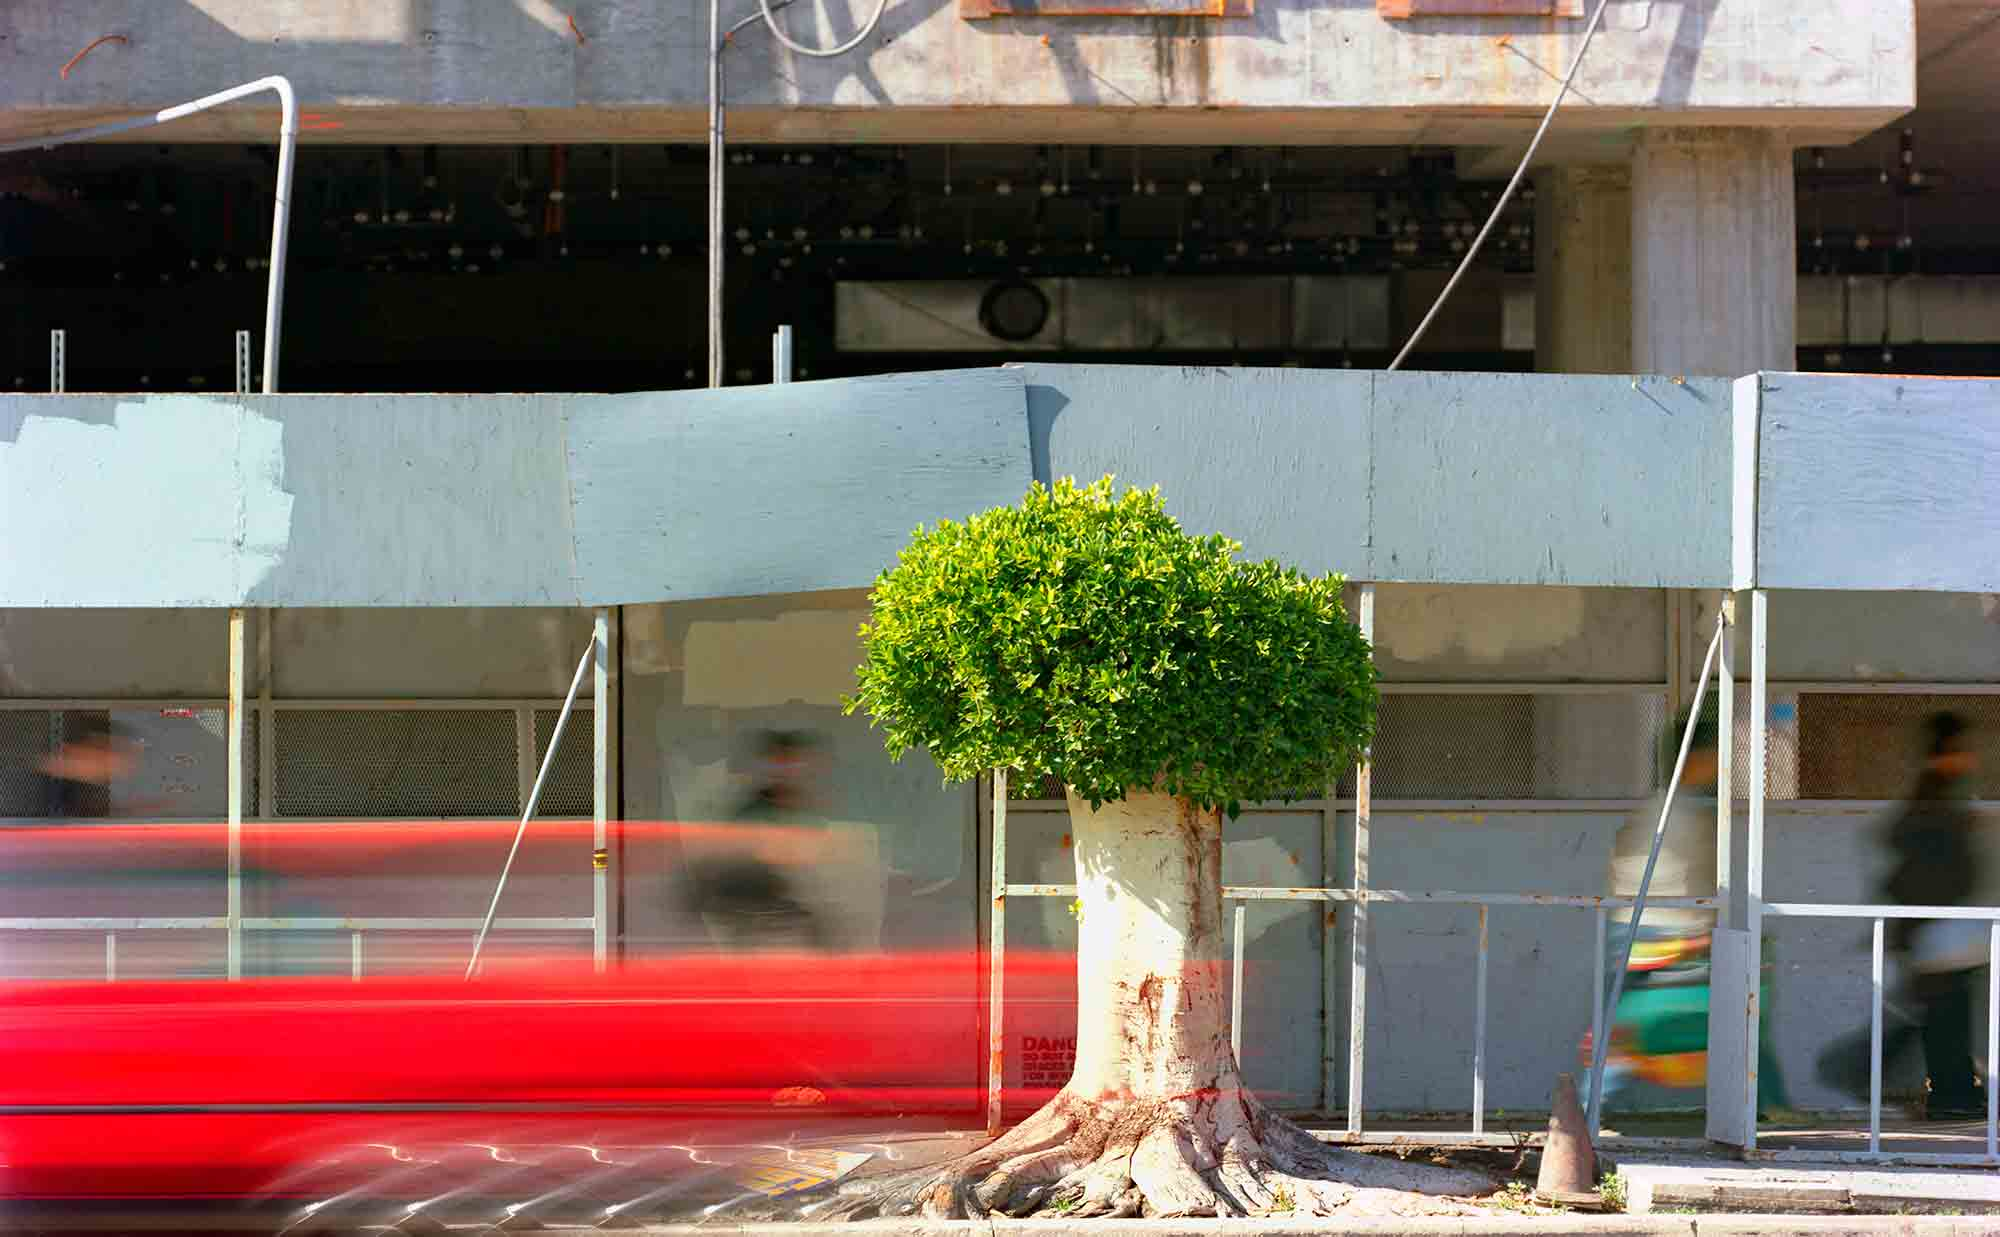 44-Ficus-#18,-Los-Angeles,-2006-(485x3).jpg